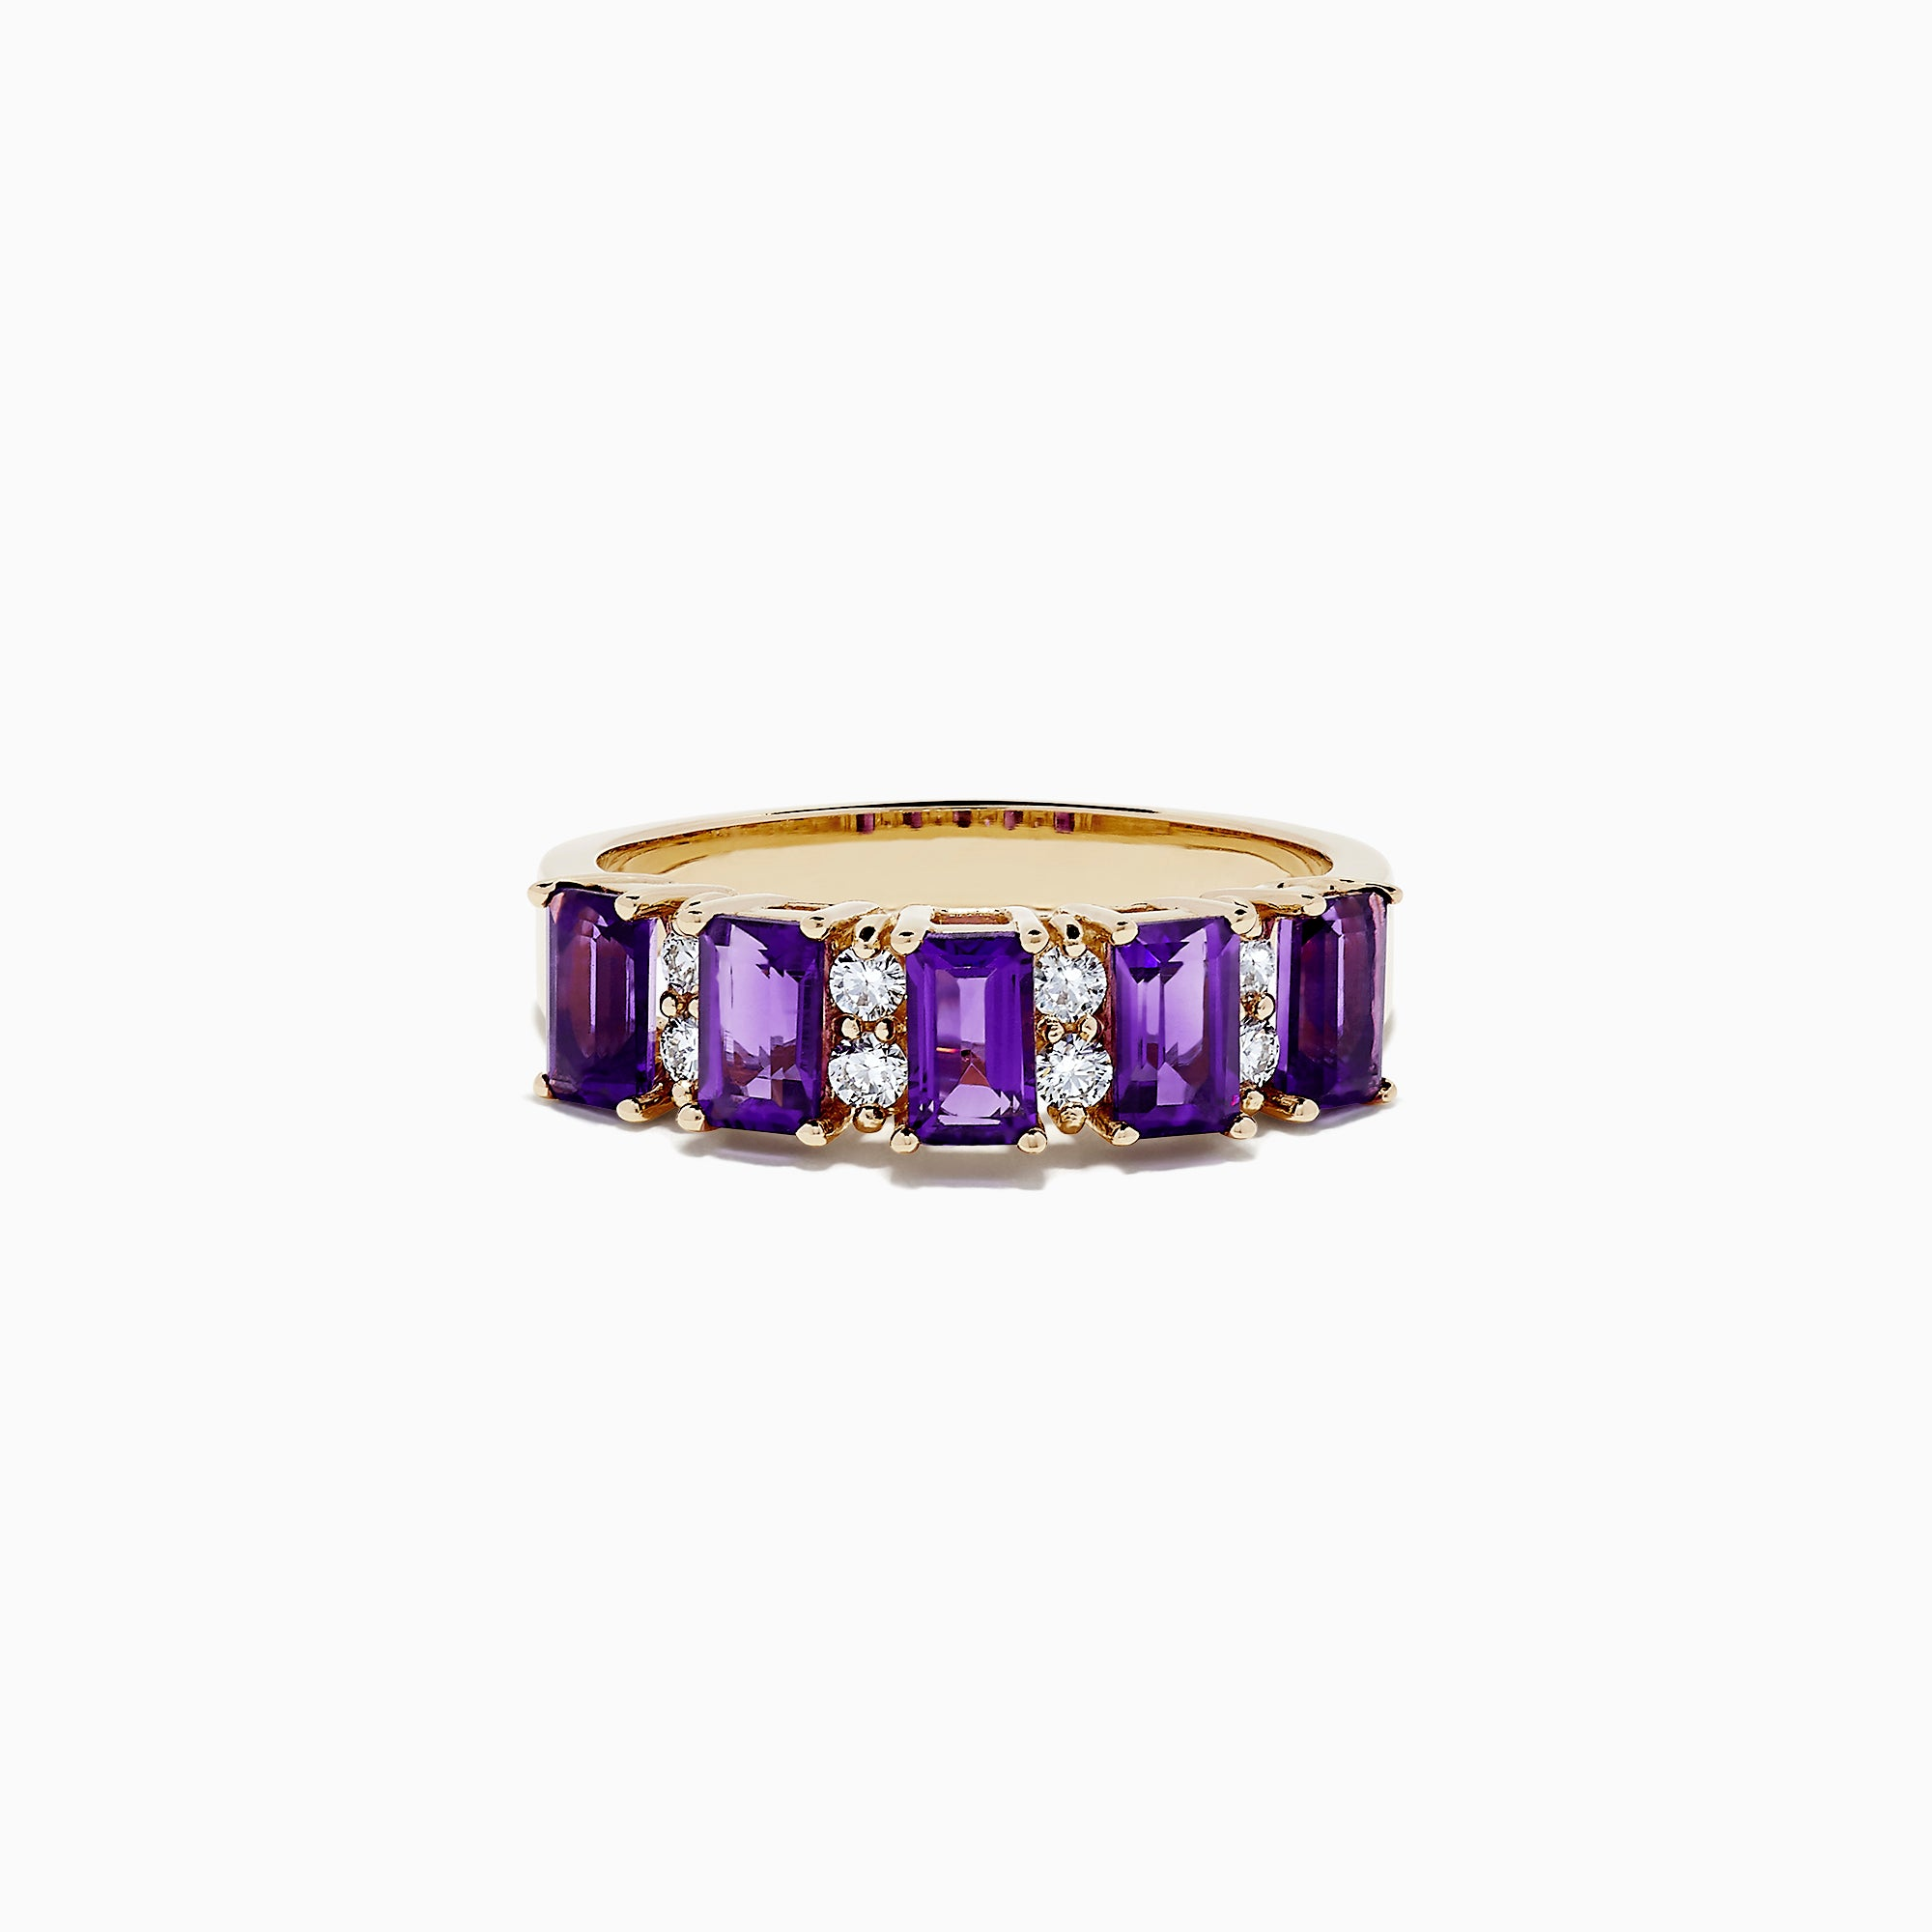 Effy 14K Yellow Gold Amethyst and Diamond Ring, 1.14 TCW